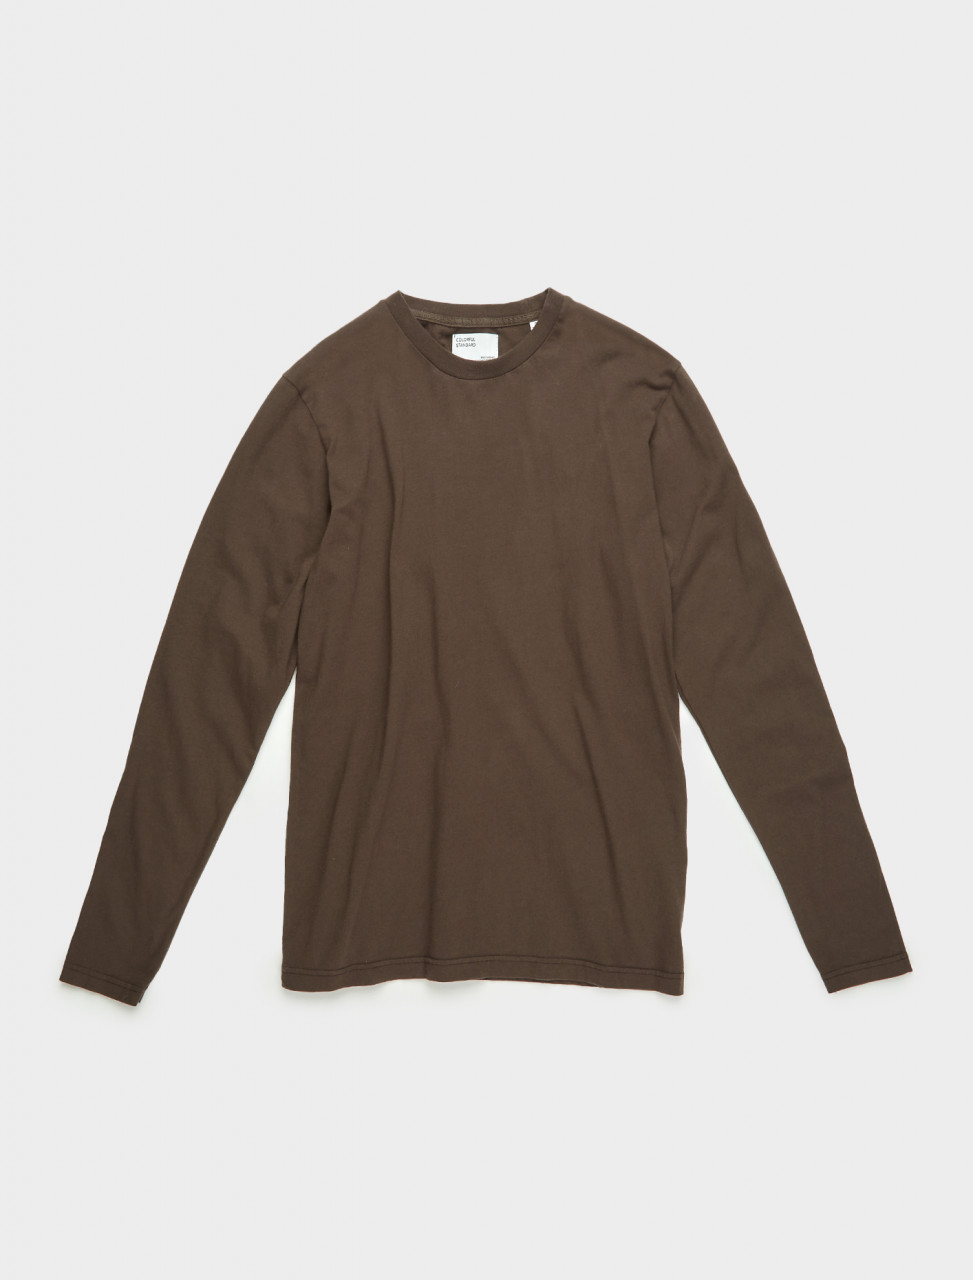 307-CS1002-CB COLORFUL STANDARD CLASSIC ORGANIC LS TEE COFFEE BROWN